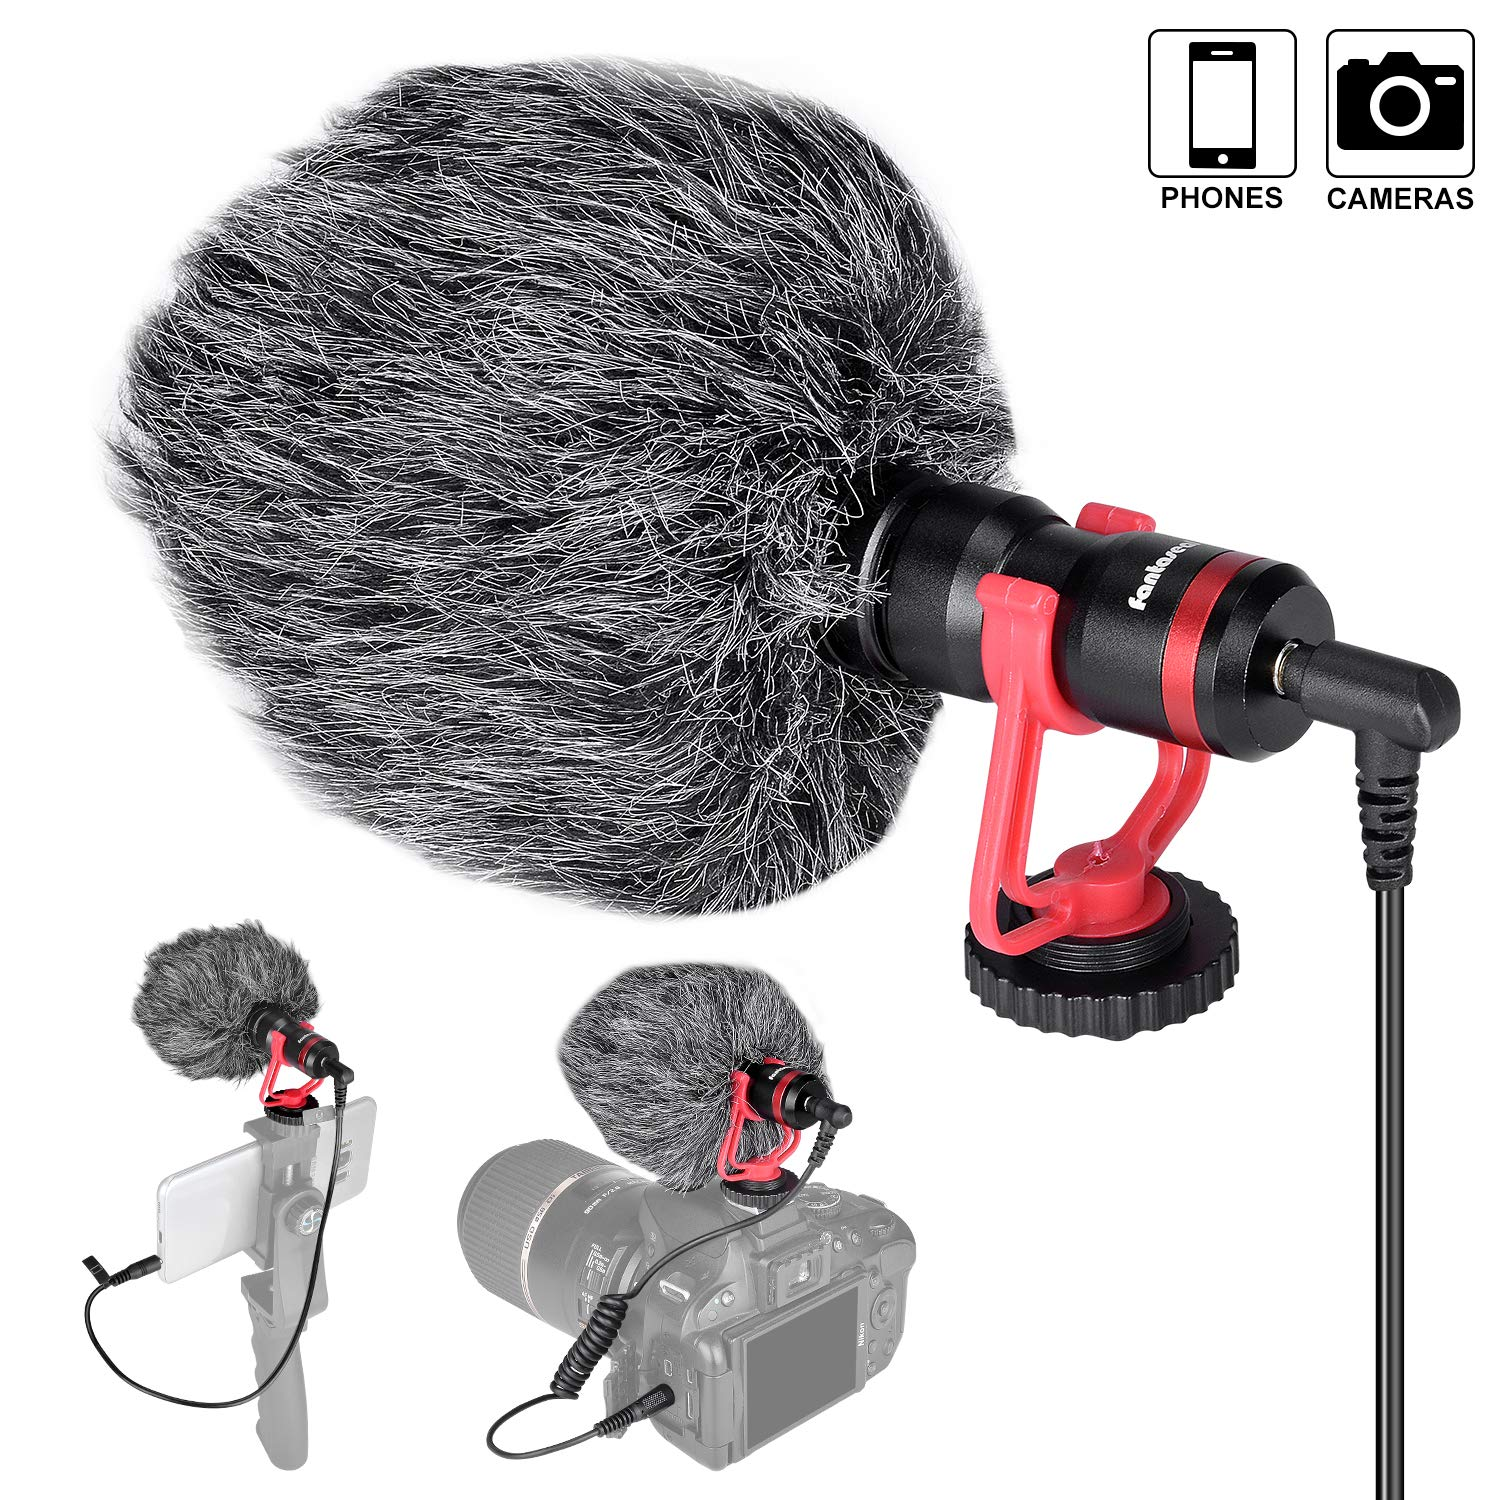 Professional Hi-sensity Hi-fidelity Mini Shotgun Video Condenser Microphone External Mic Compatible for DSLR Camera Camcorder Smartphone iPhone for Interview Podcast Live Streaming Vlog Youtube Studio by fantaseal